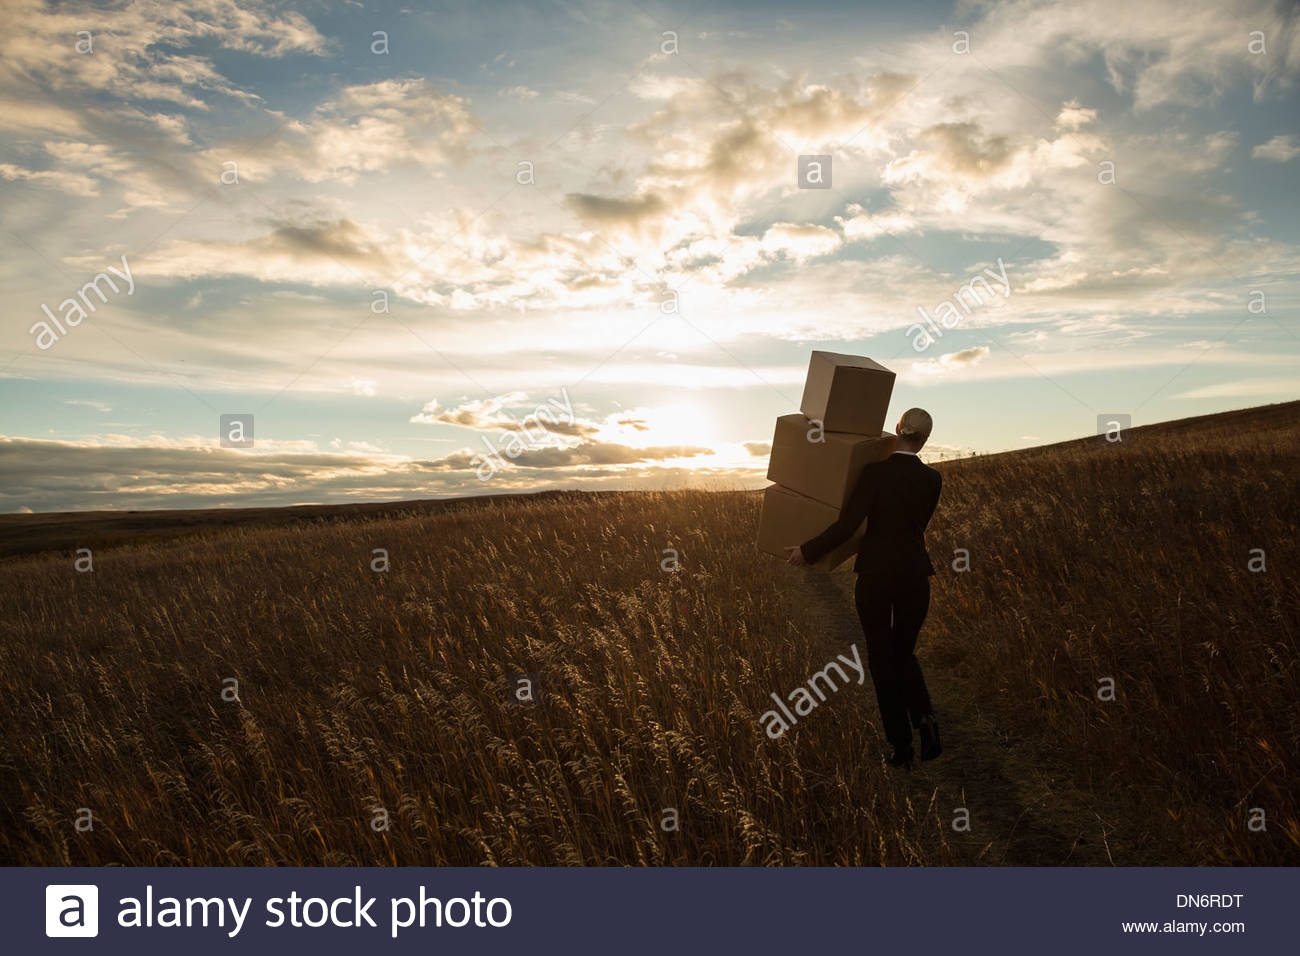 Businesswoman with stacked boxes walking through field at dusk - Stock Image